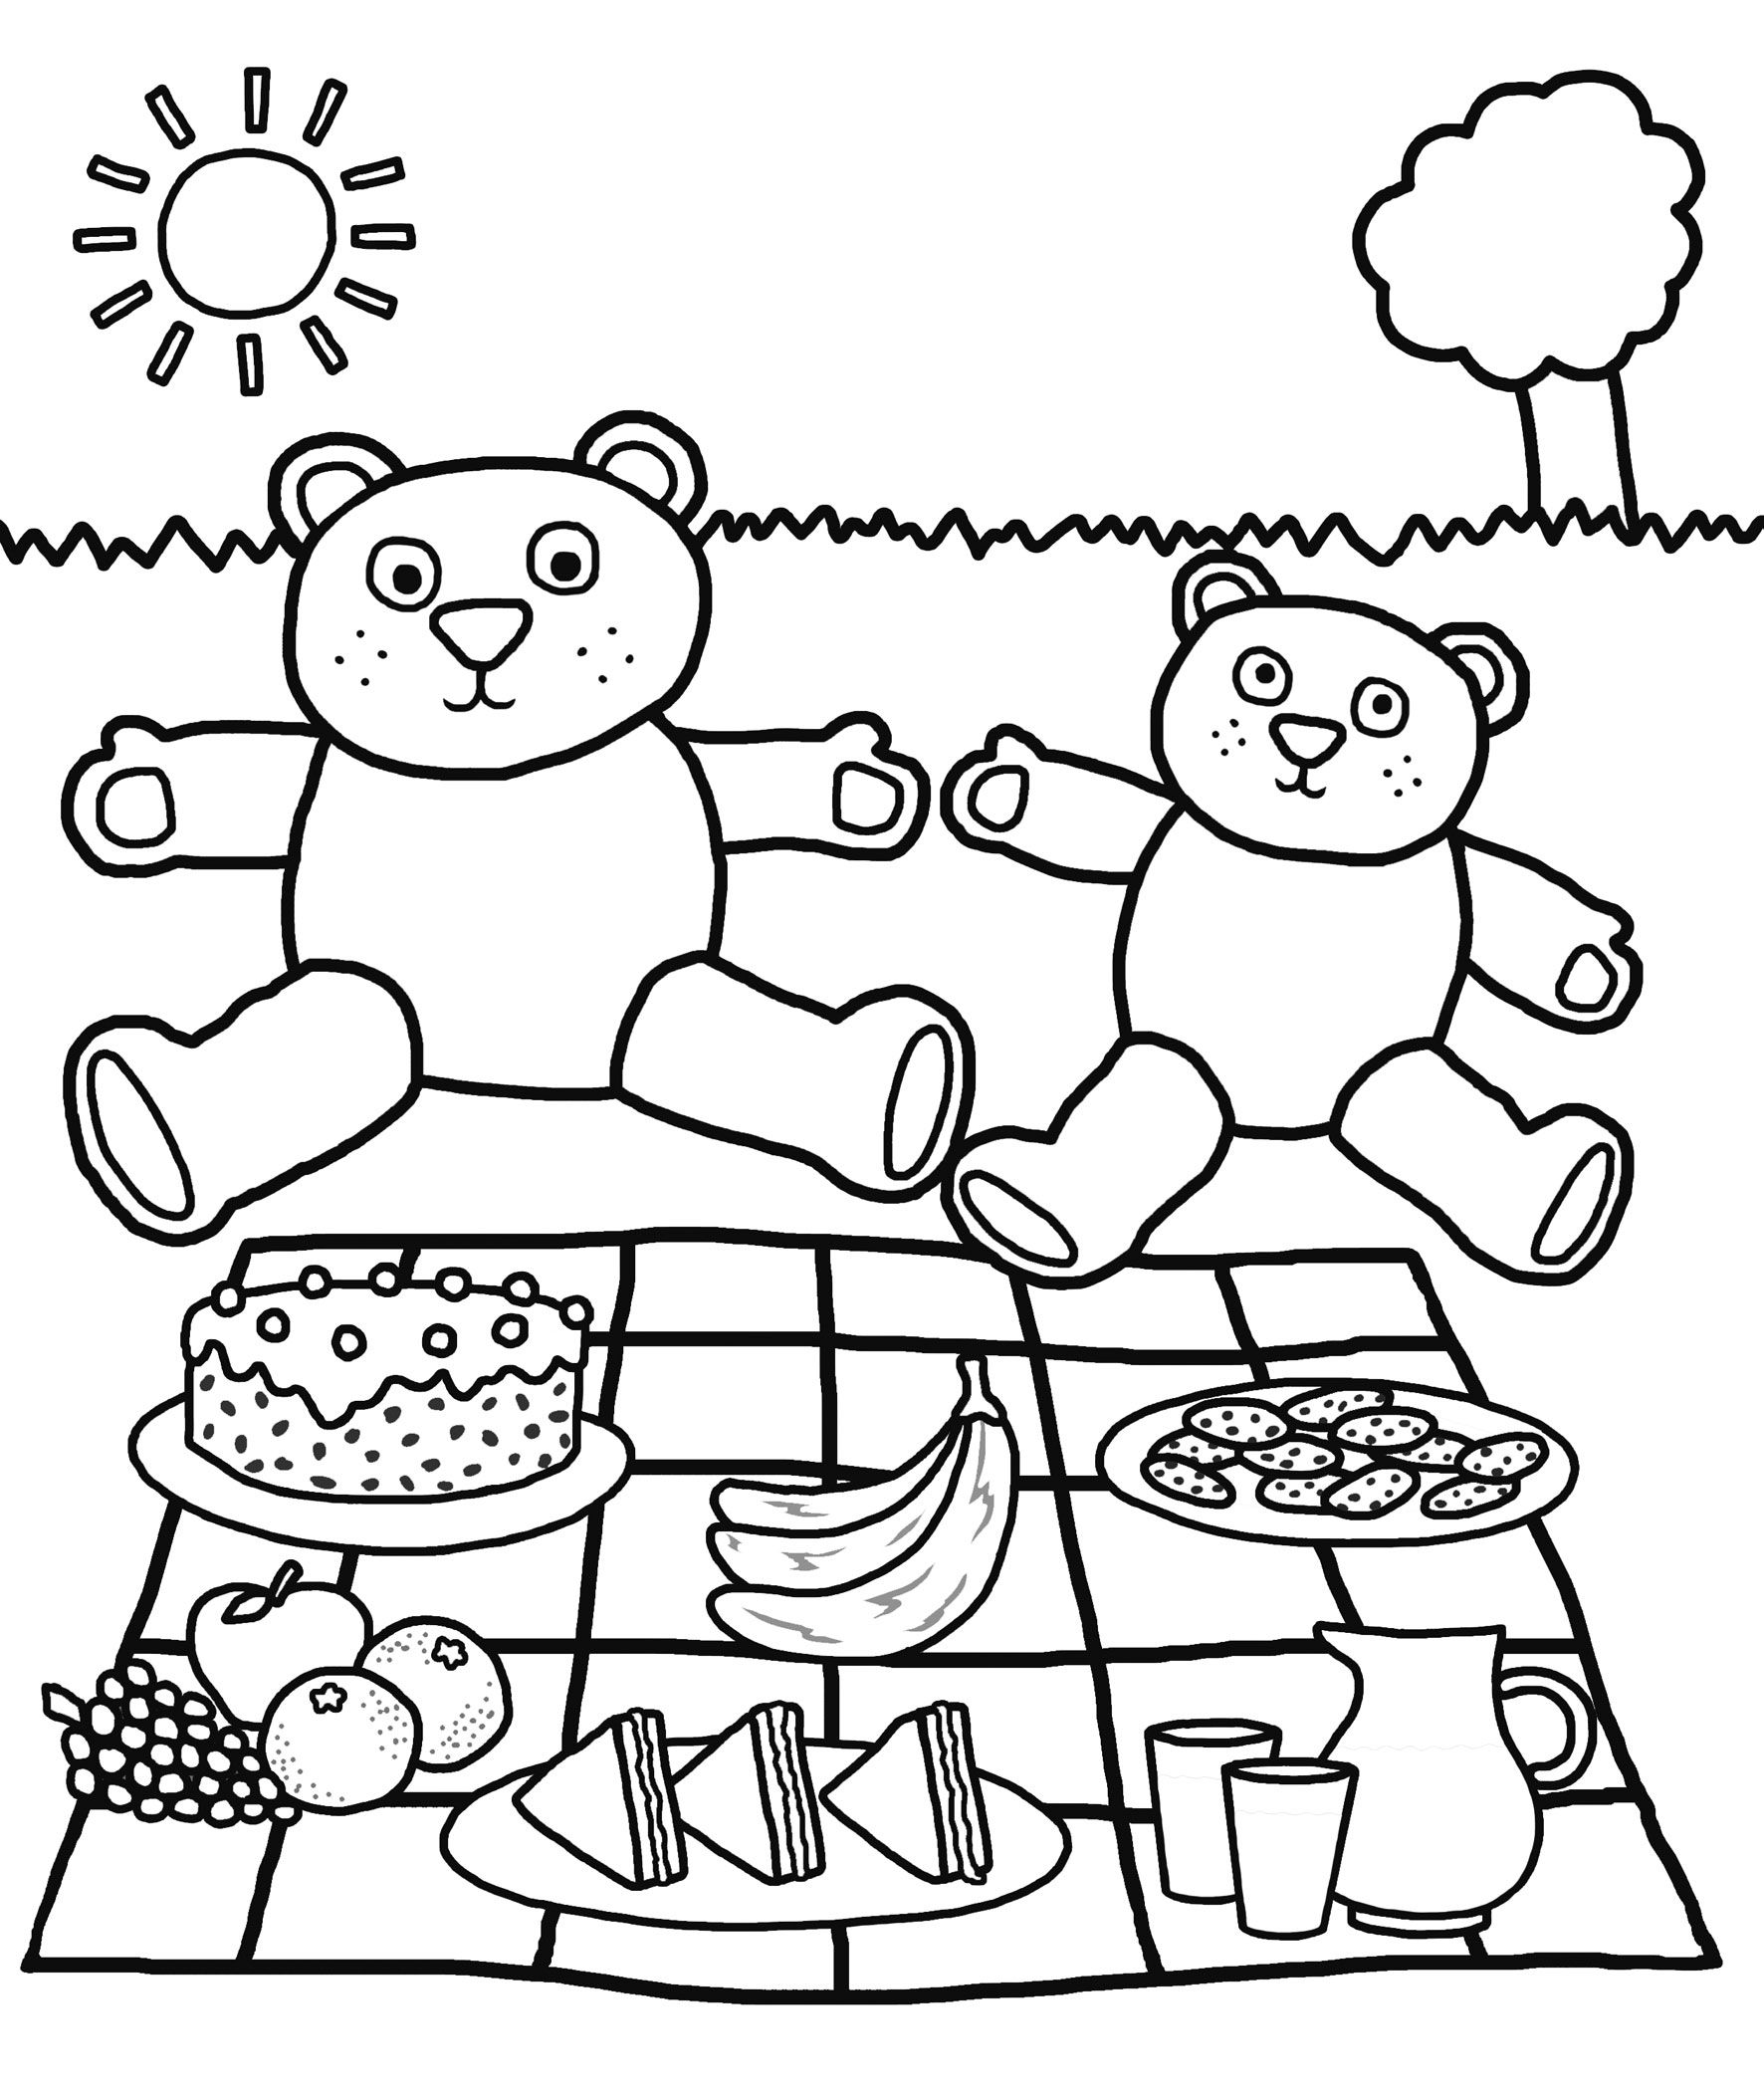 July 10 is National Teddy Bear Picnic Day! Enjoy this fun teddy bear ...